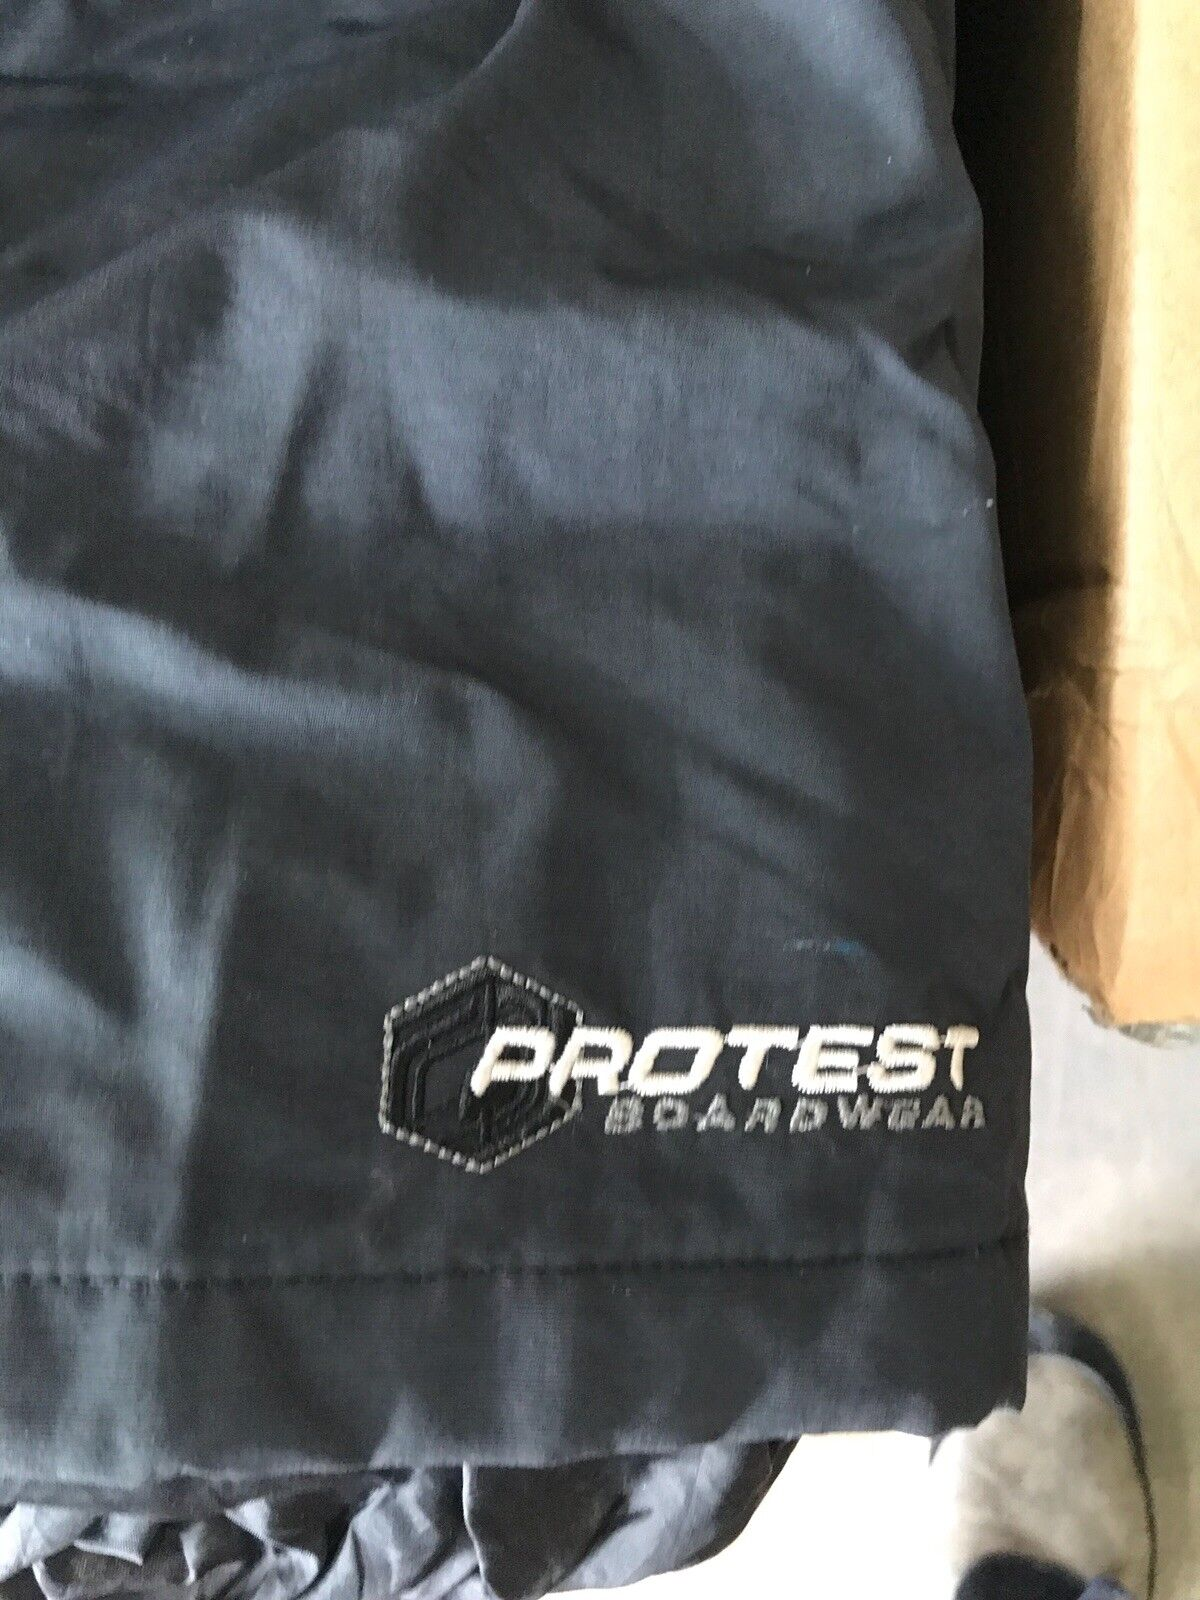 NEW PROTEST PROTEST NEW Damenschuhe GIRLS SKI TROUSERS SMALL 976583